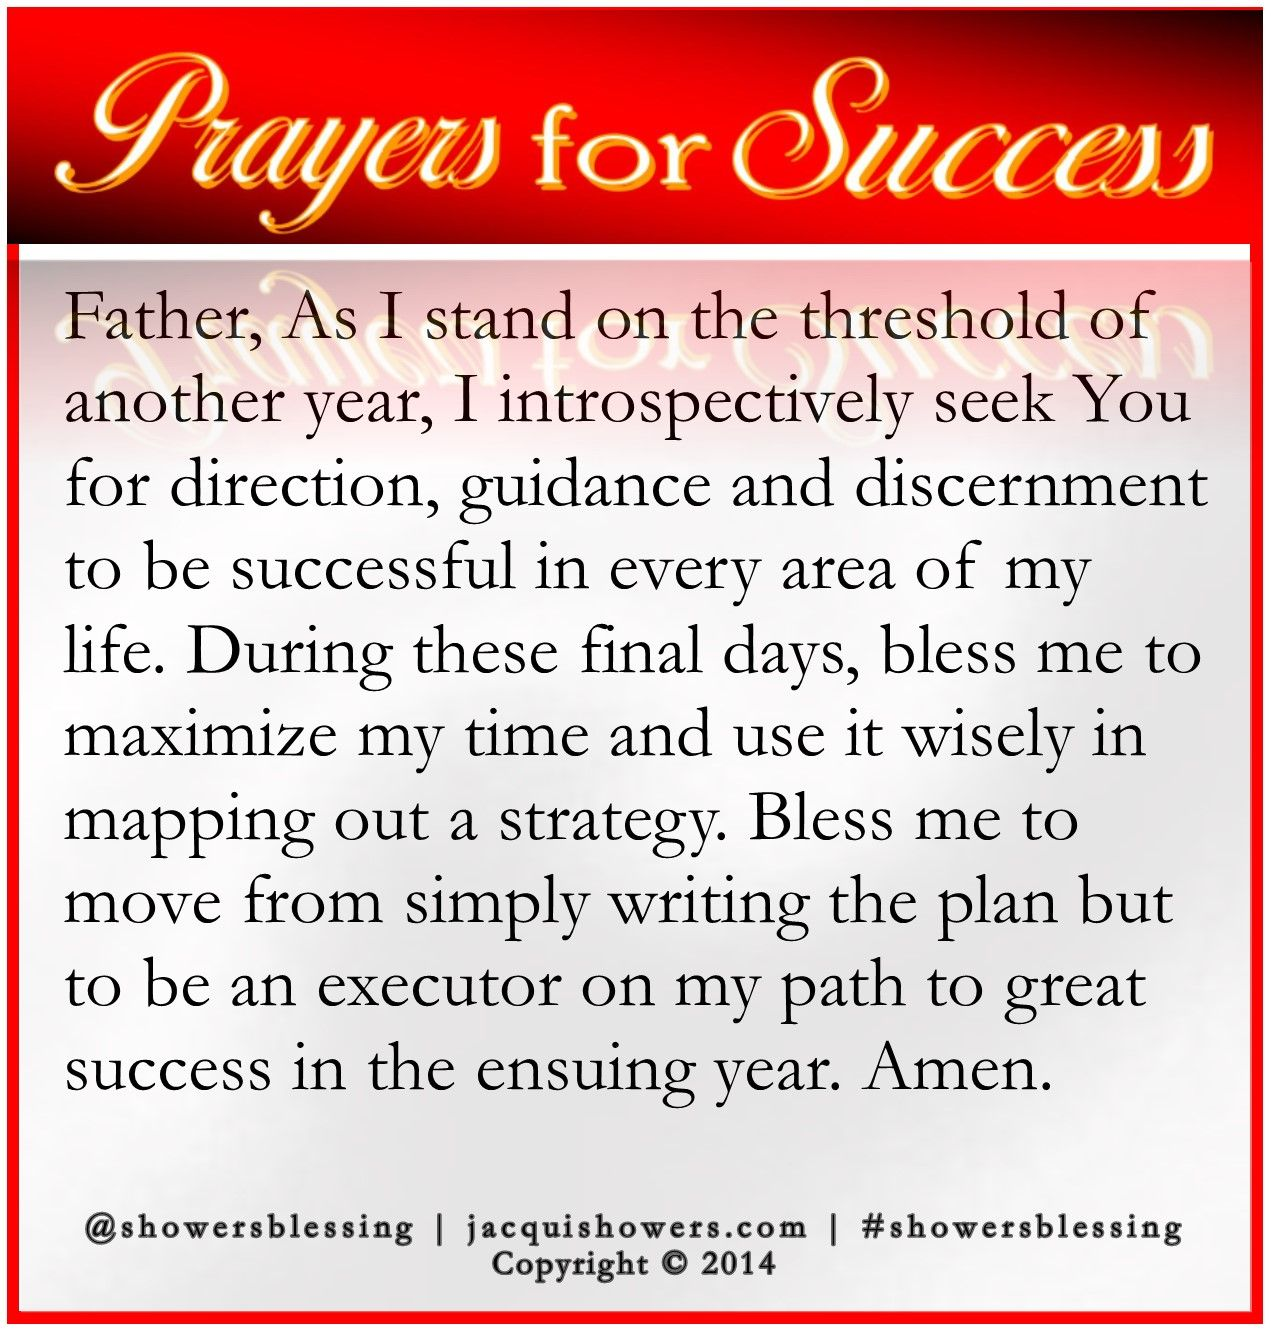 PRAYER FOR SUCCESS: Father, As I stand on the threshold of another year, I introspectively seek You for direction, guidance and discernment to be successful in every area of my life. During these final days, bless me to maximize my time and use it wisely in mapping out a strategy. Bless me to move from simply writing the plan but to be an executor on my path to great success in the ensuing year. Amen. #showersblessing http://wp.me/p11Atm-Uz